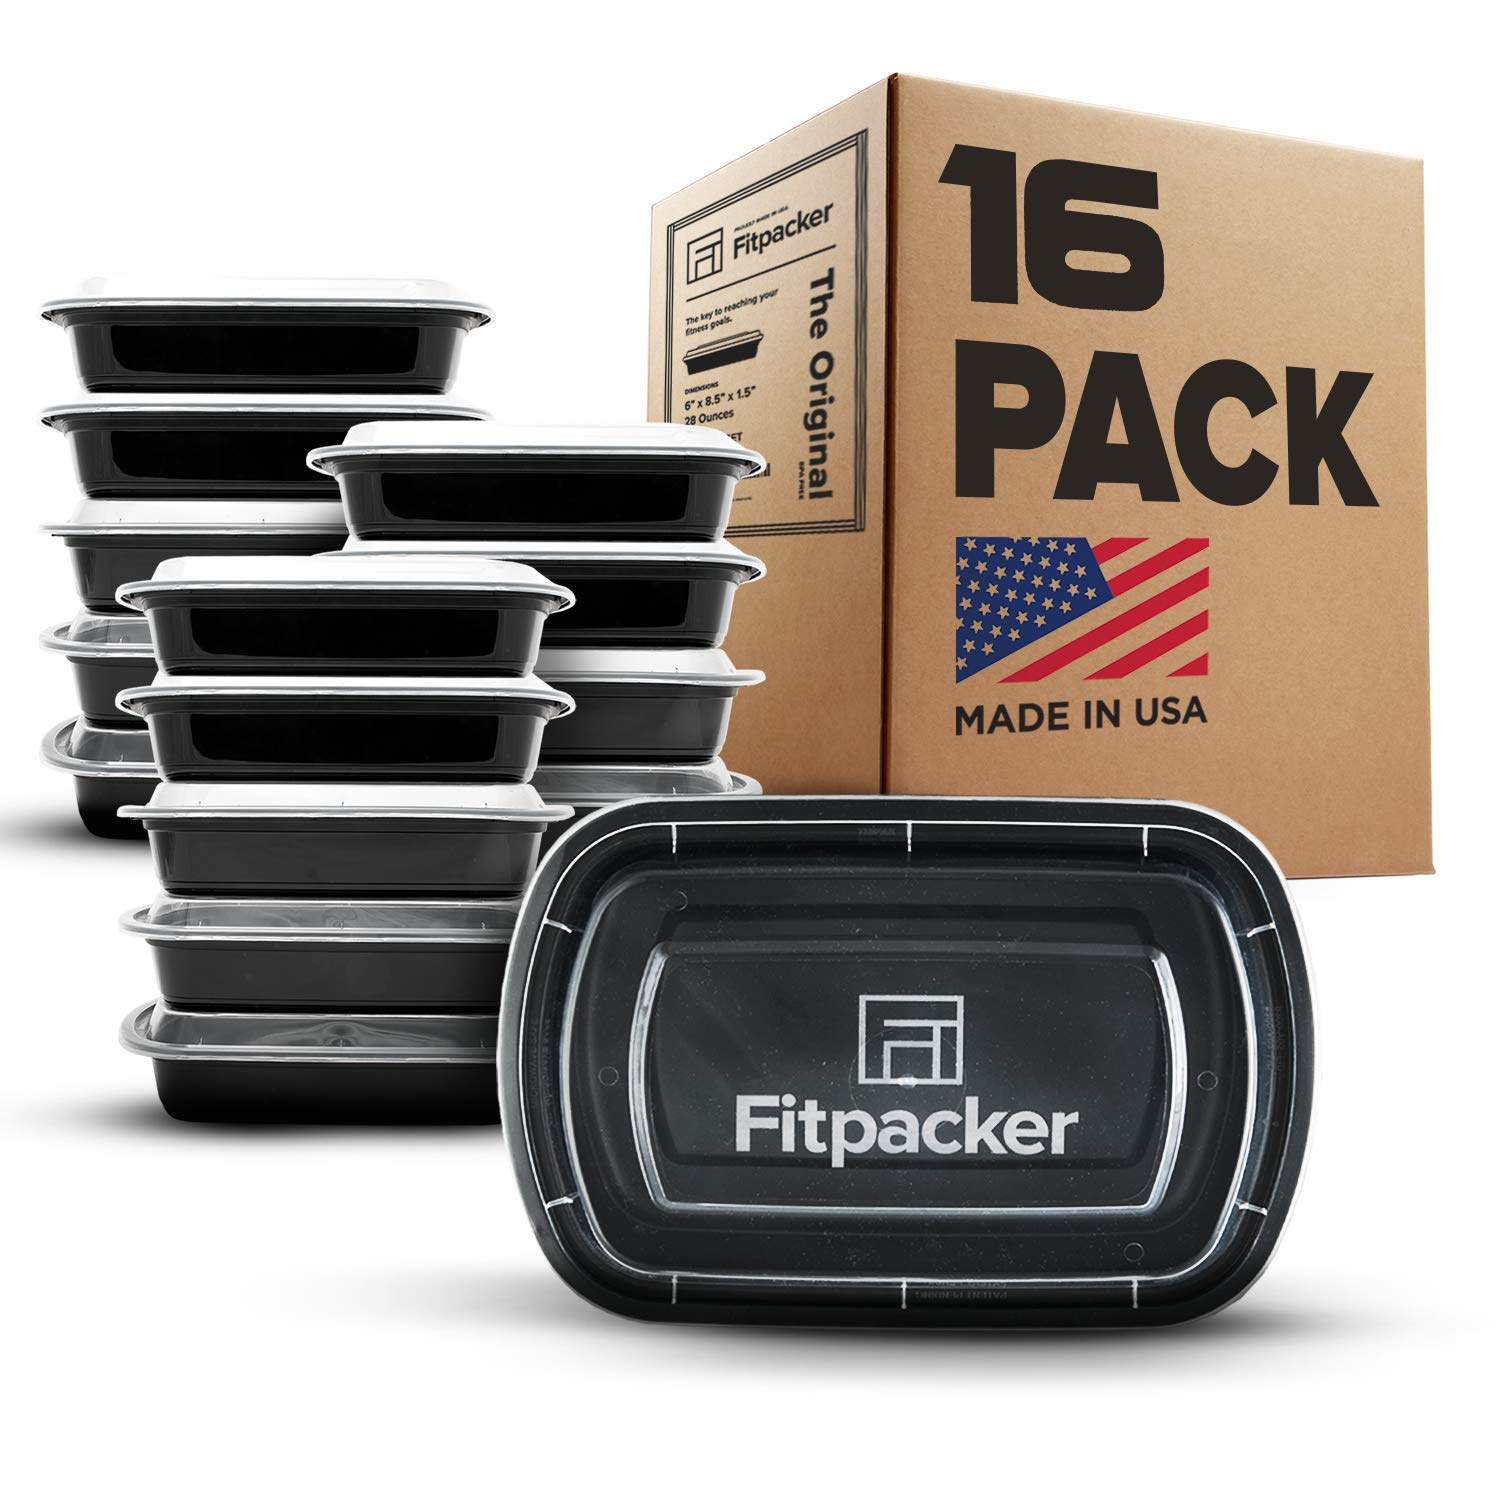 Fitpacker Meal Prep Containers - USA Quality - BPA Free Food Storage - Microwave, Dishwasher and Freezer Safe (16 pack, One Compartment, 28oz)